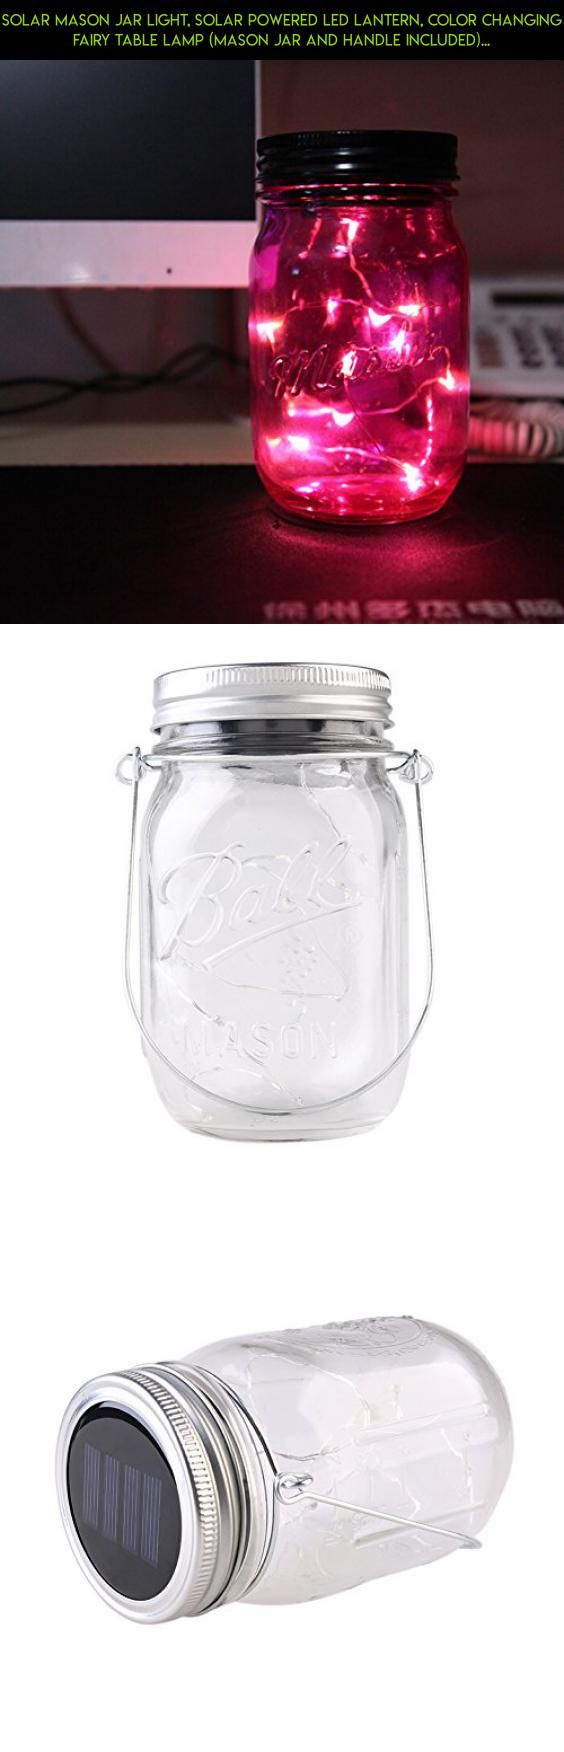 Solar Mason Jar Light, Solar Powered LED Lantern, Color Changing Fairy Table Lamp (Mason Jar and Handle Included). [Factory Store] #airtight #lids #tech #fpv #drone #kit #storage #shopping #camera #technology #racing #parts #products #jars #gadgets #plans #with